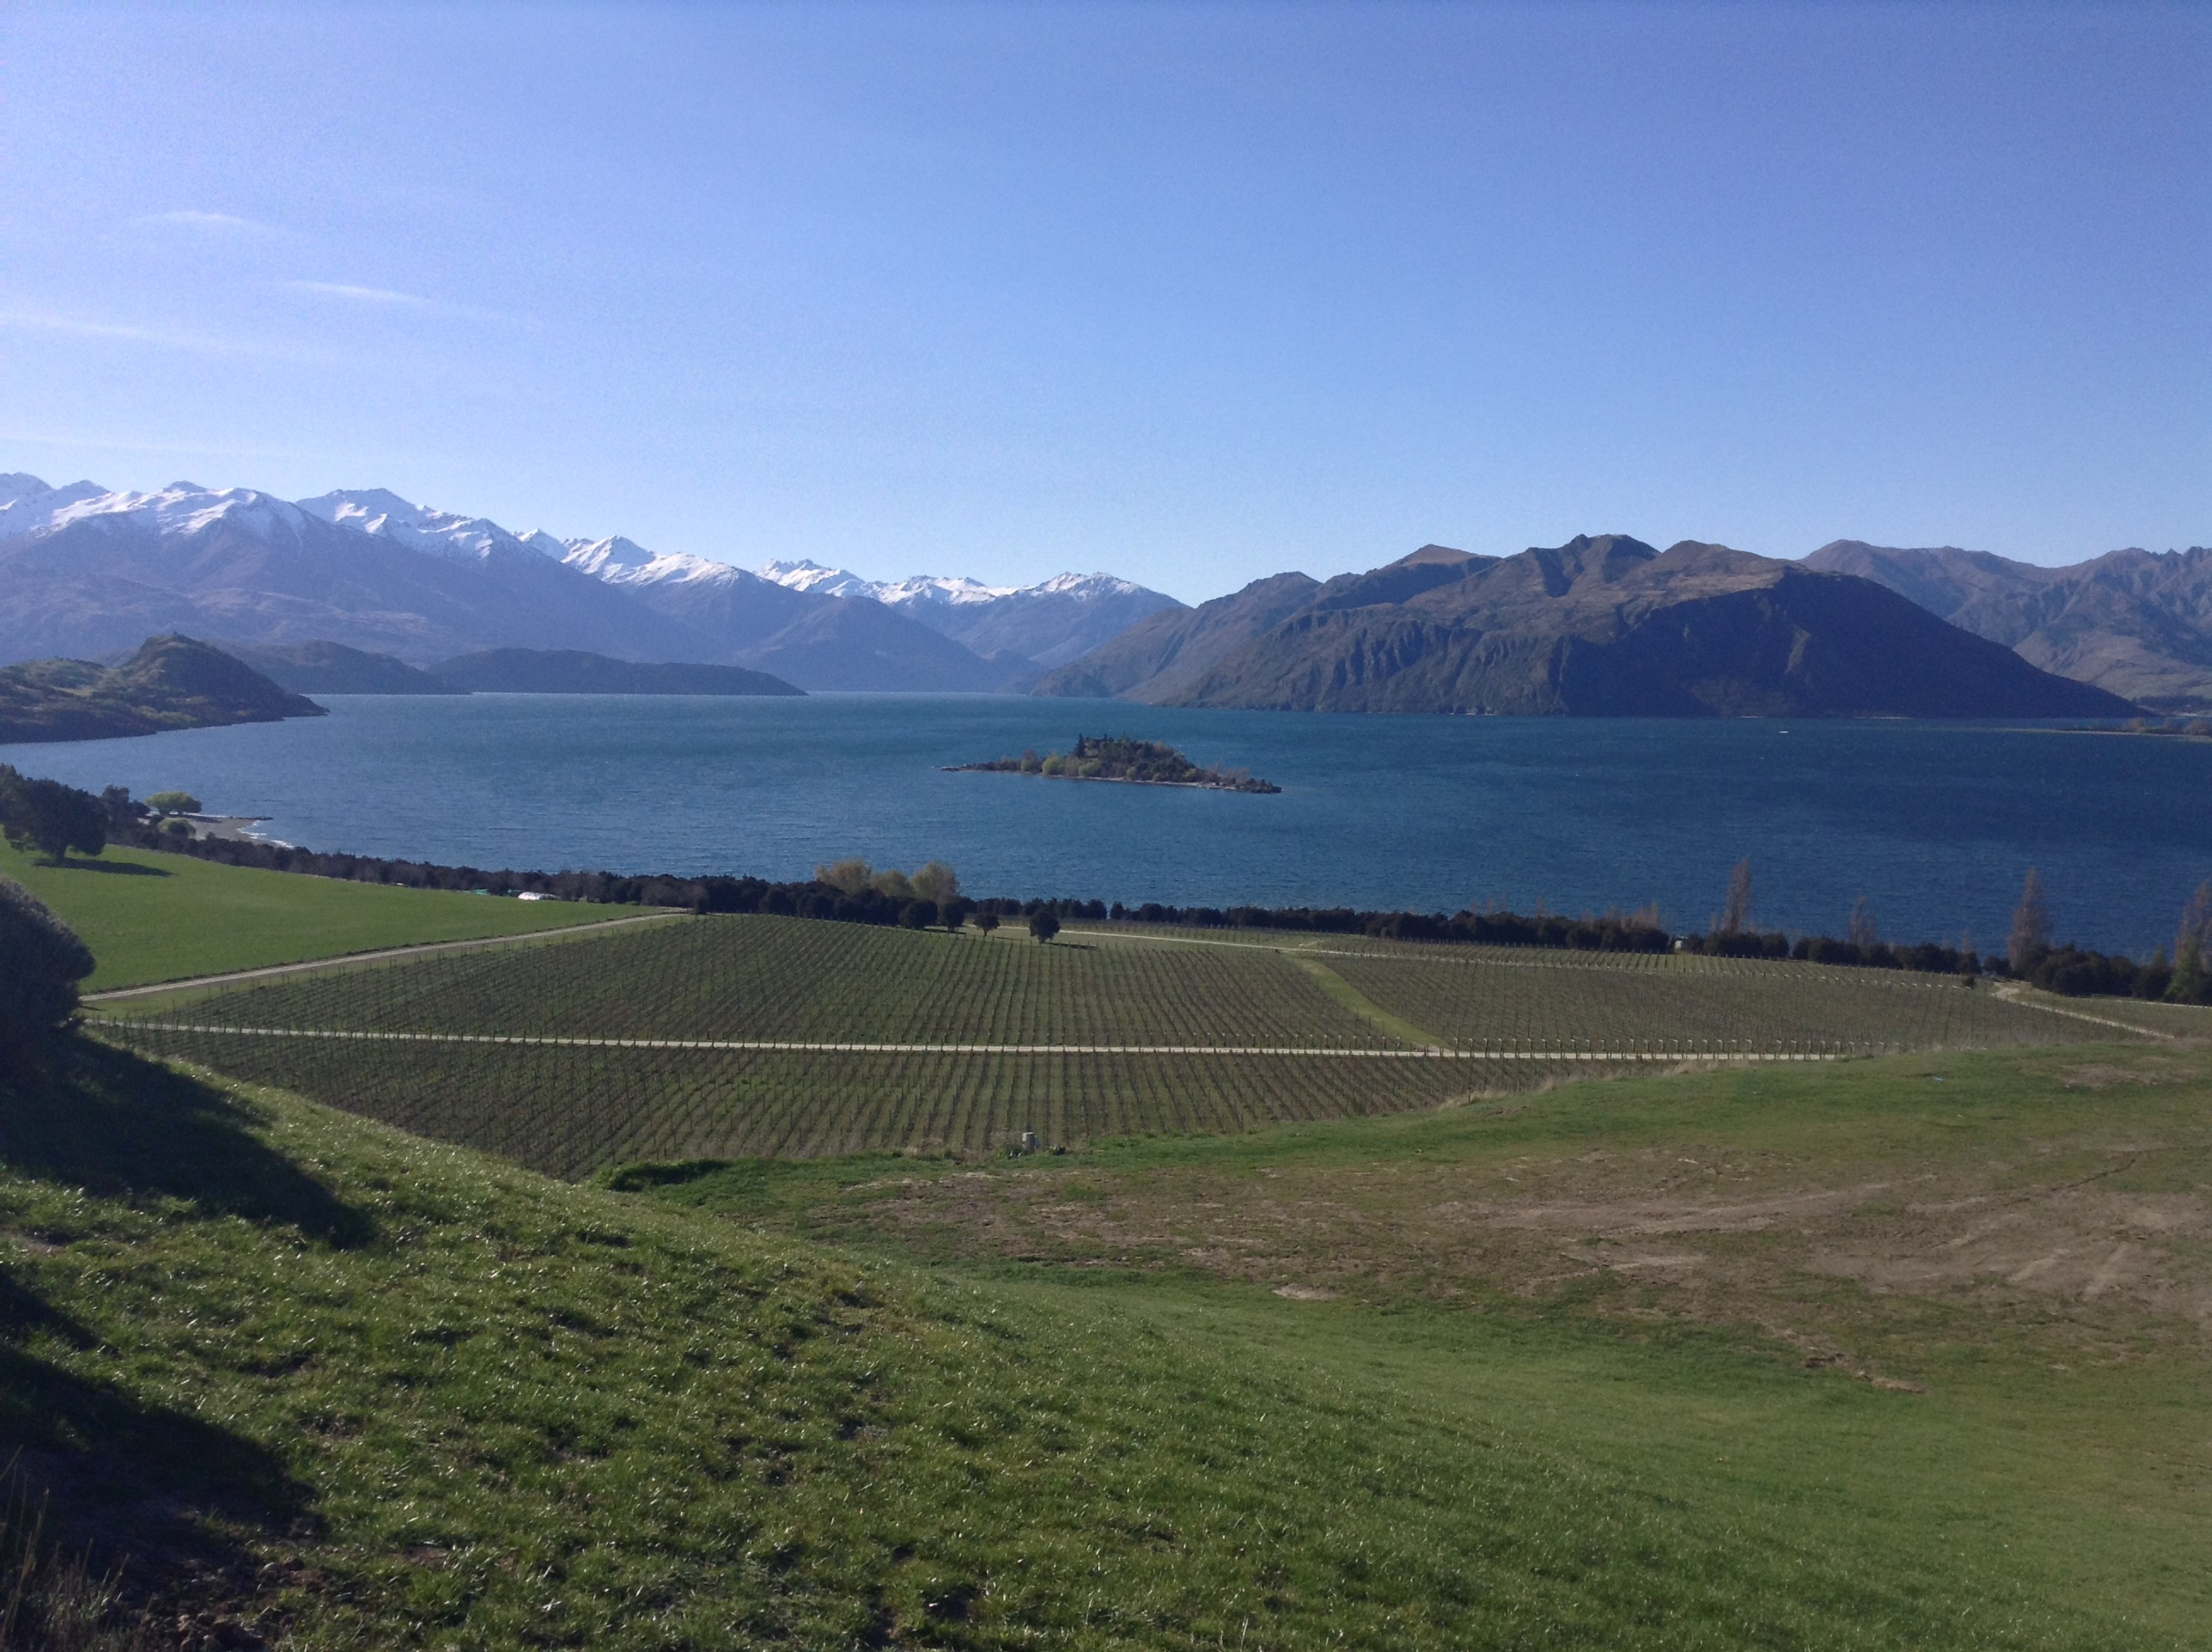 Tinker's Field during early Spring, with Lake Wanaka and Ruby Island framed by snow-capped Southern Alps.